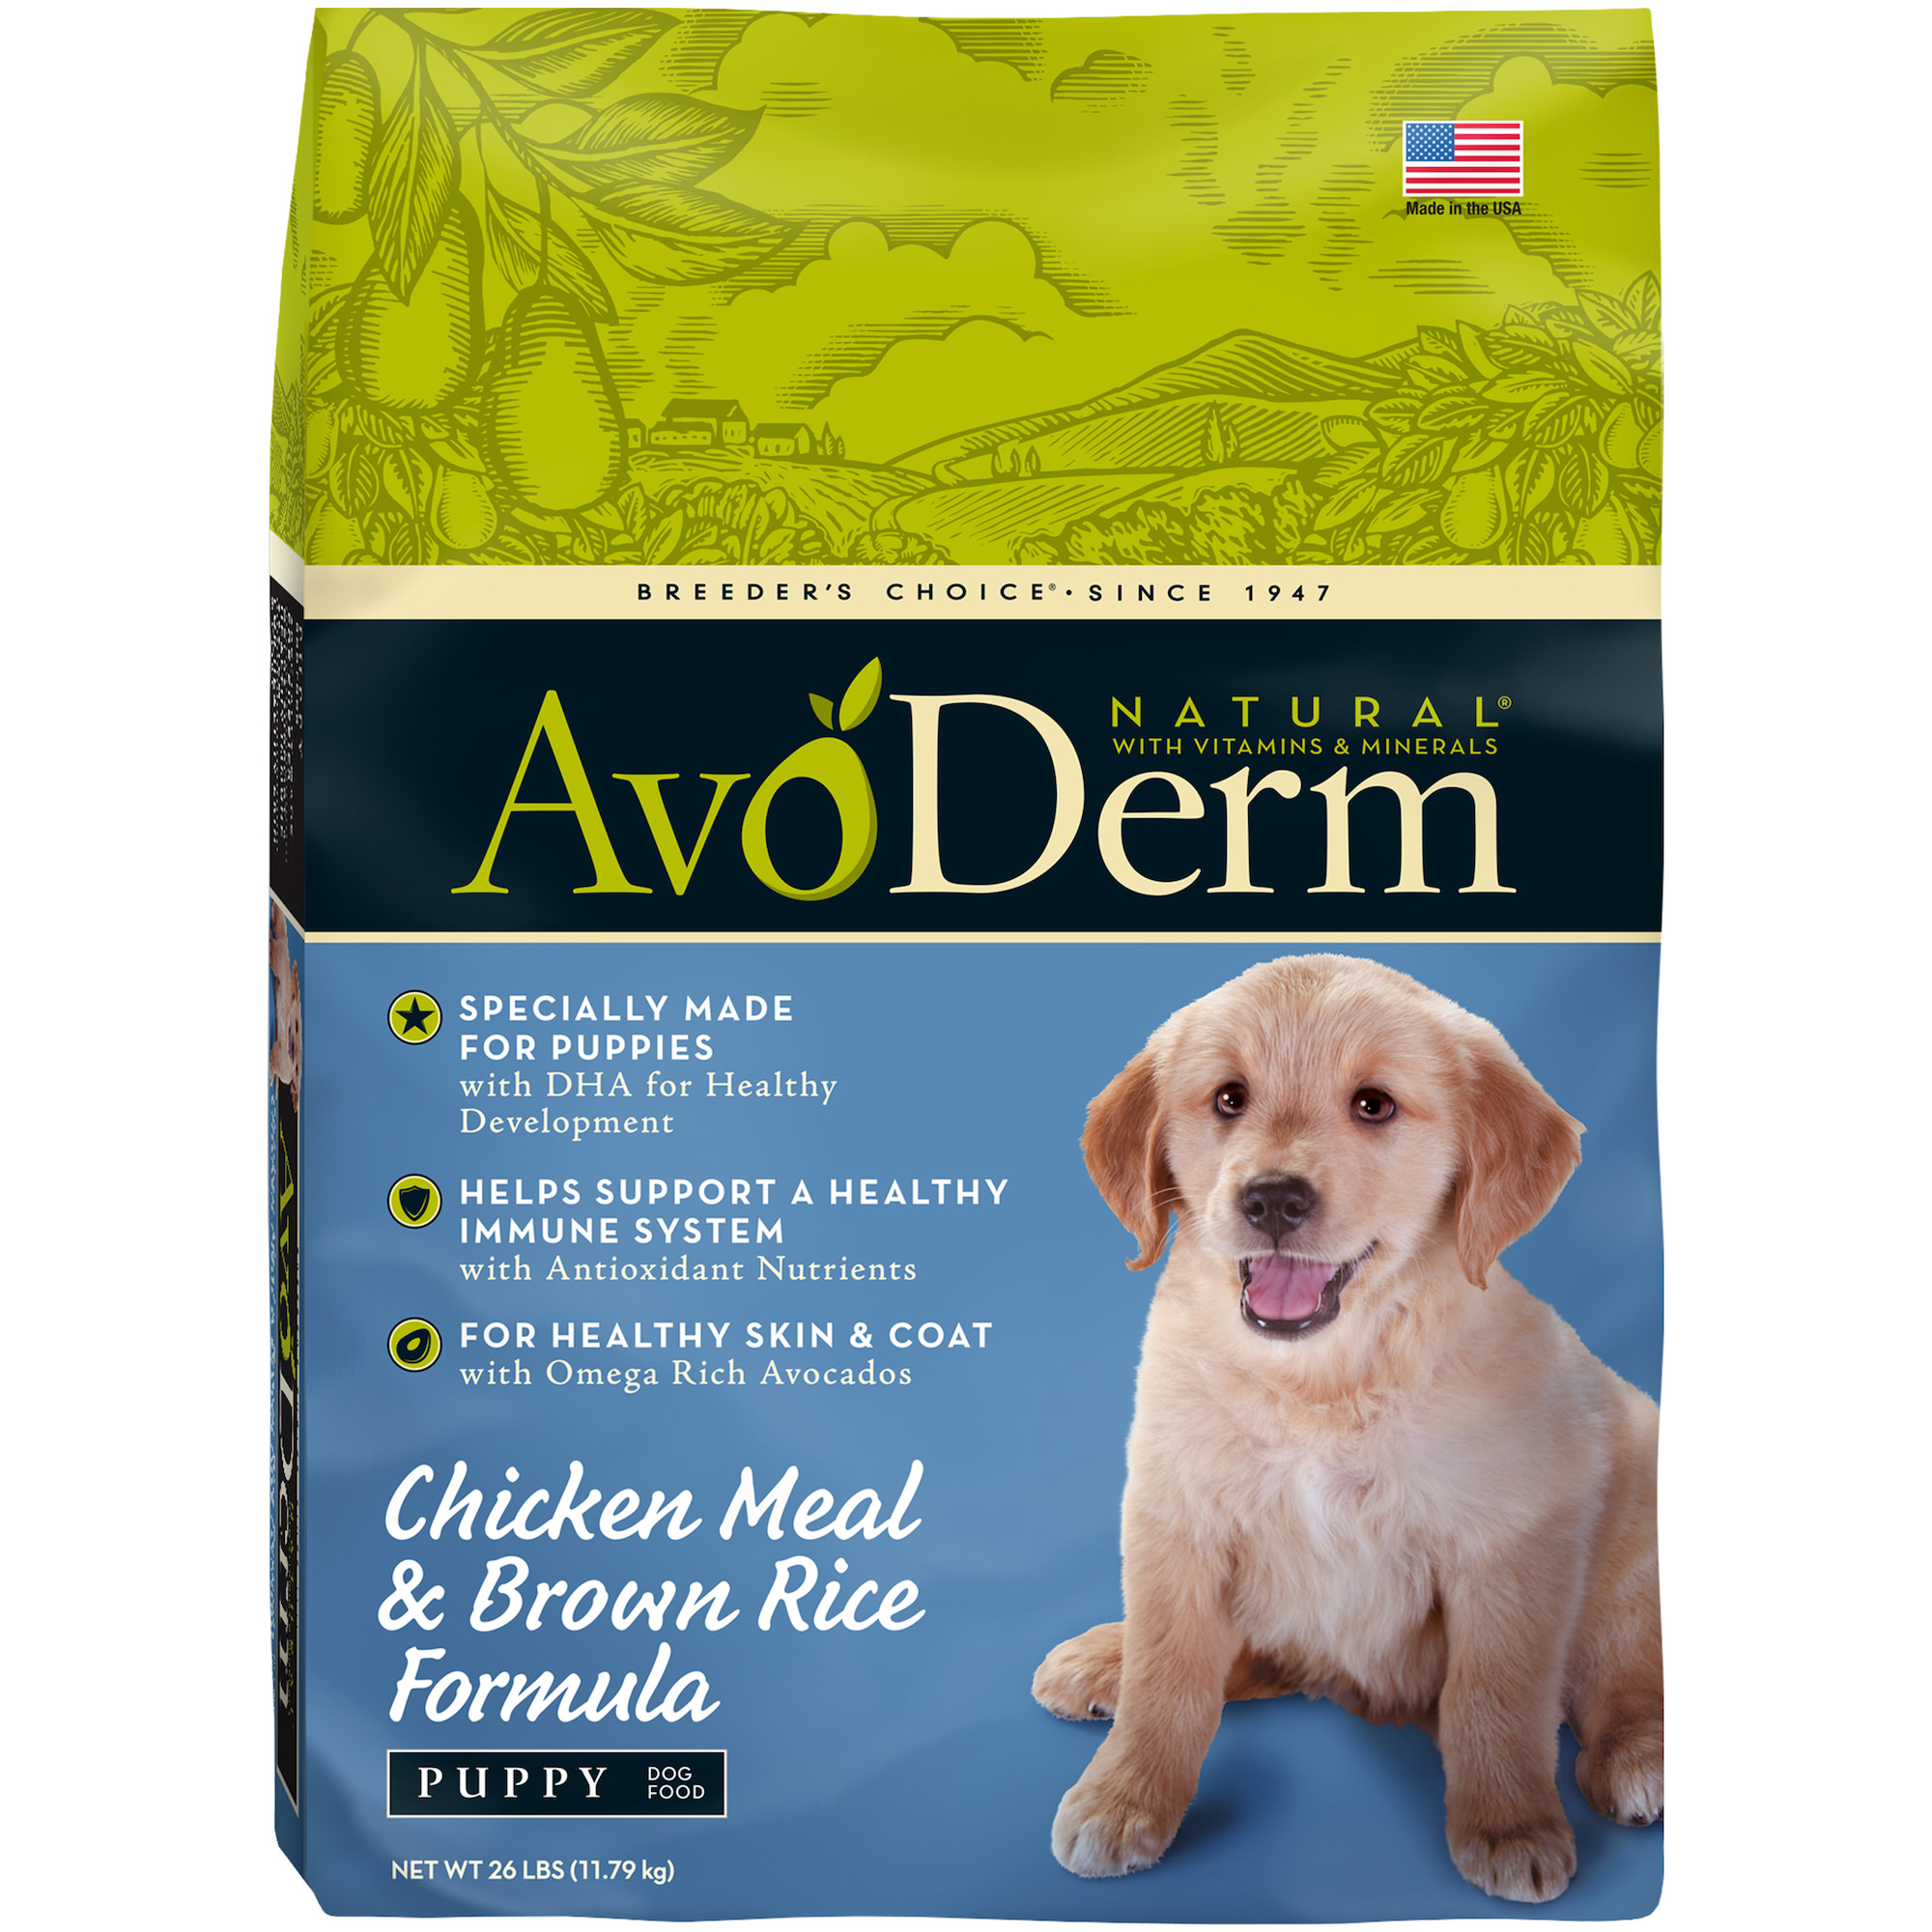 AvoDerm Puppy Food, Natural Chicken Meal and Brown Rice Formula, 26-Pound